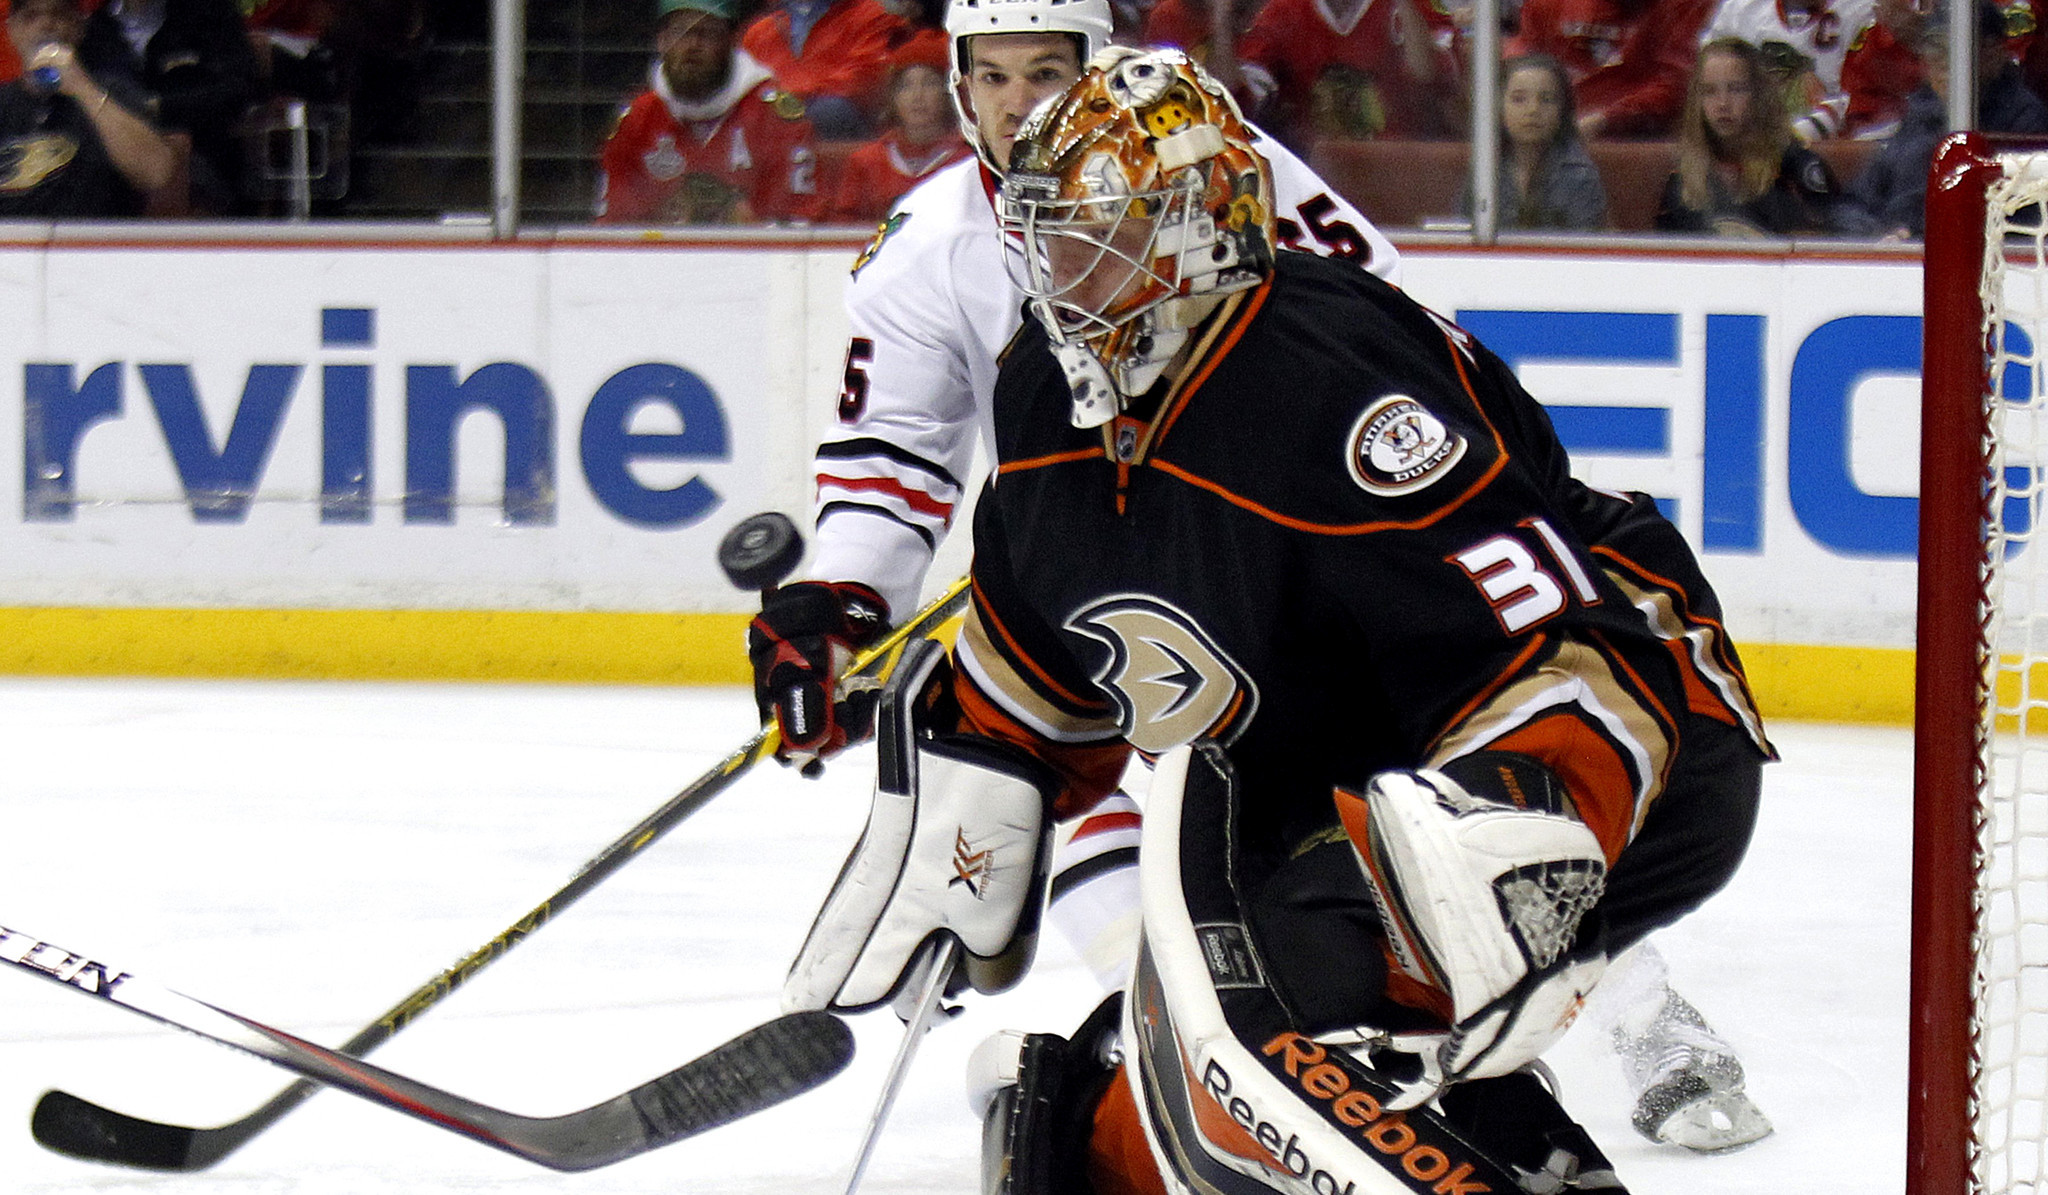 Ducks are outplayed by Blackhawks in 4-1 loss